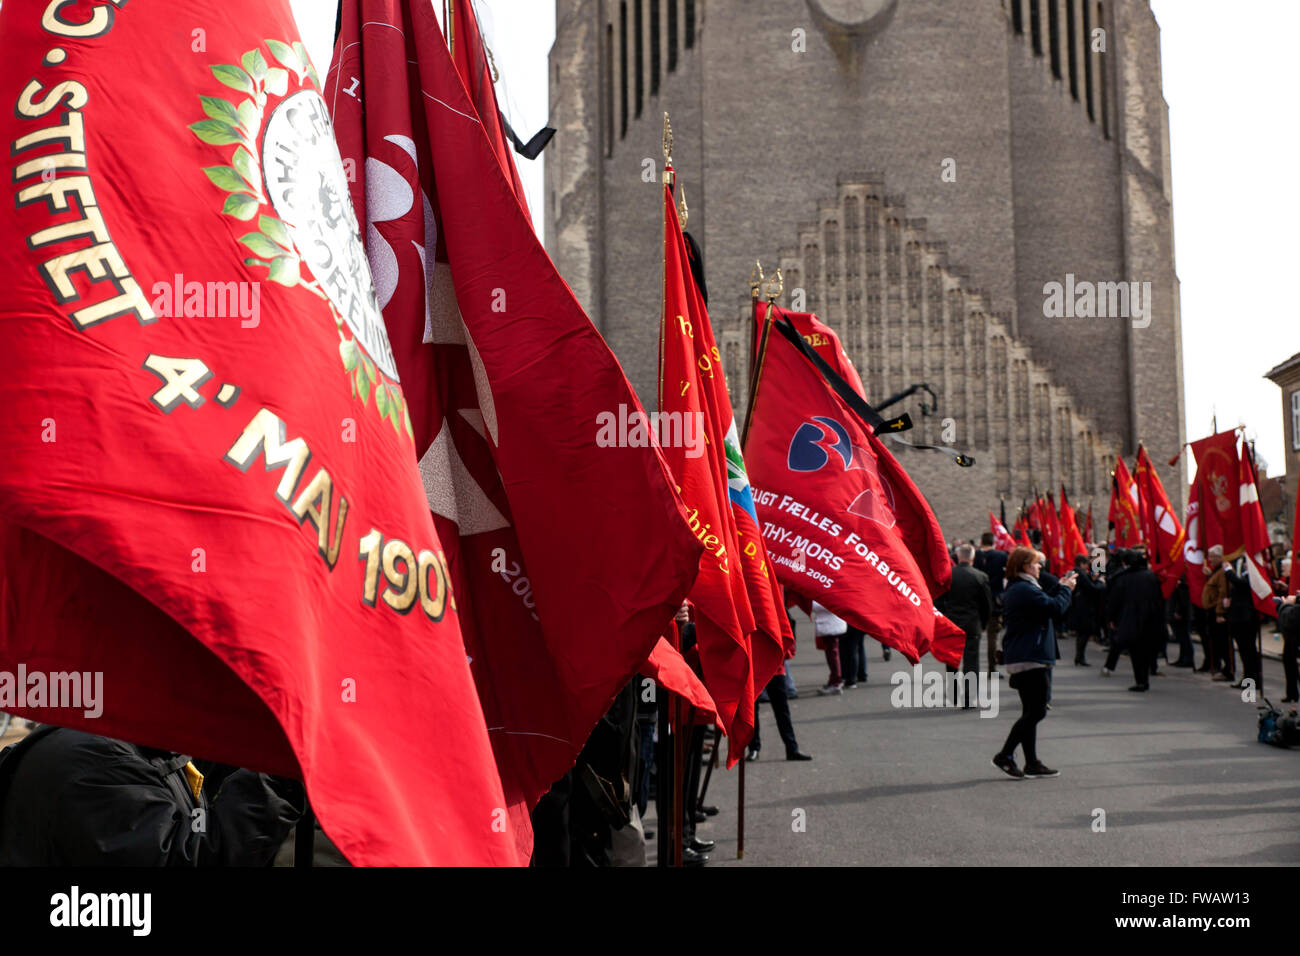 Copenhagen, Denmark, April 2nd, 2016. Flags from local party branches and trade unions are lined up at the road - Stock Image